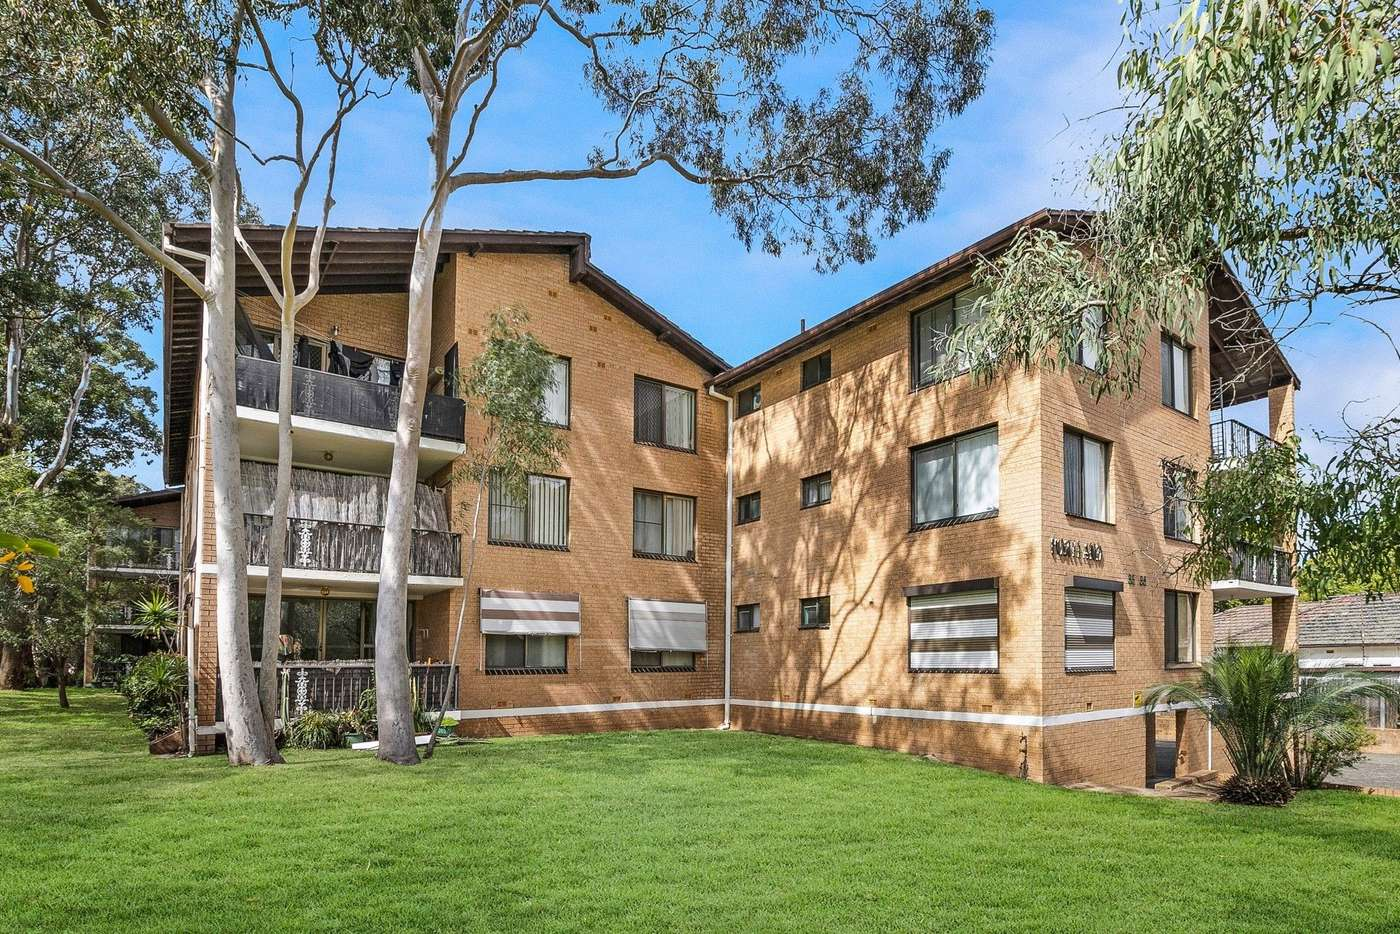 Main view of Homely apartment listing, 19/33 Sir Joseph Banks Street, Bankstown NSW 2200